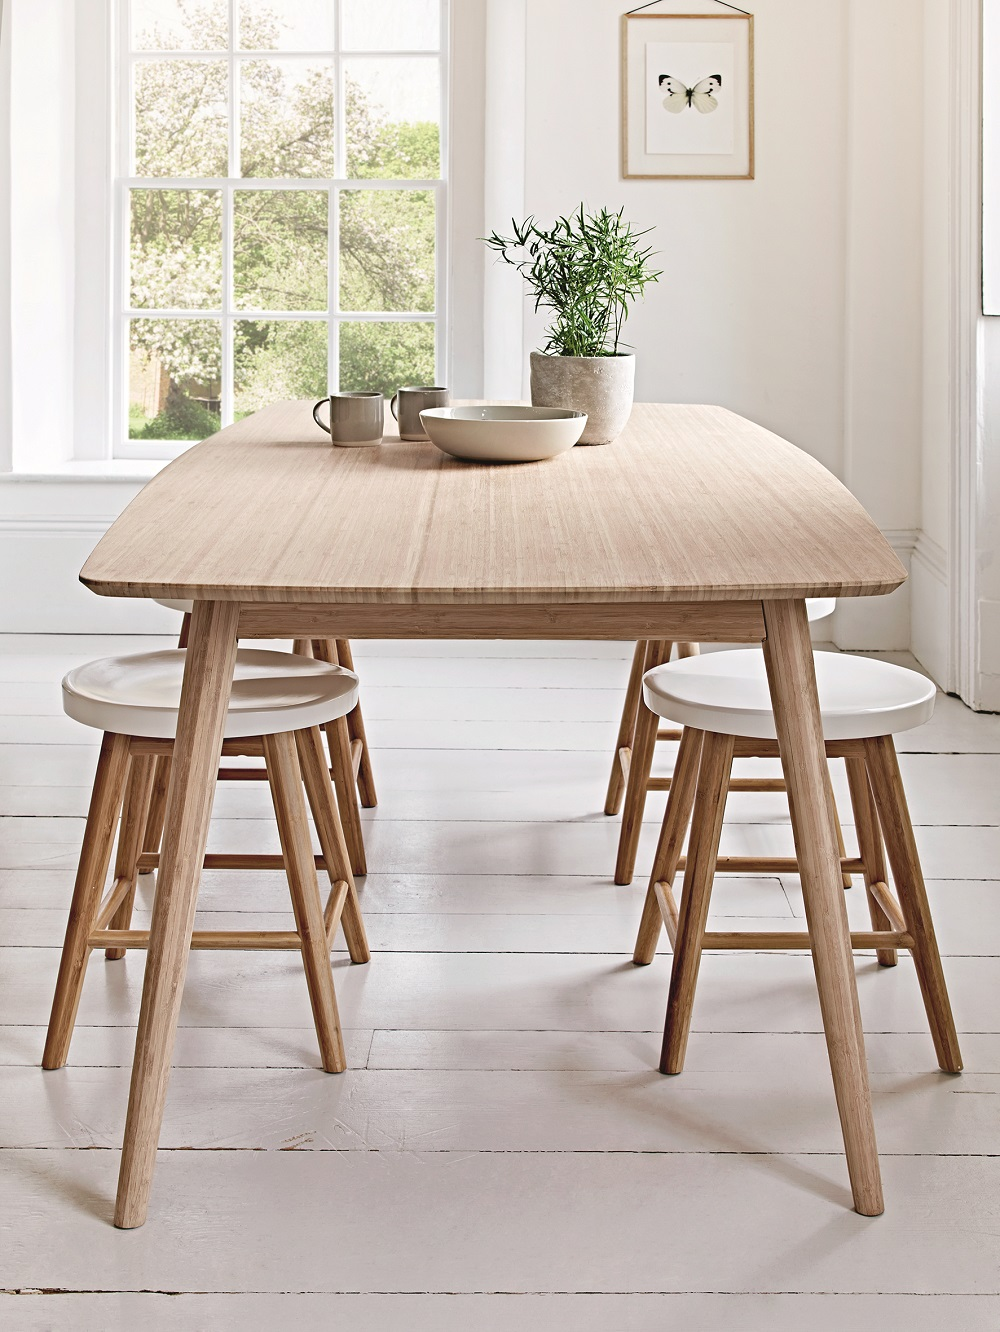 Scandinavian style dining room furniture homegirl london for Dining room styles 2016